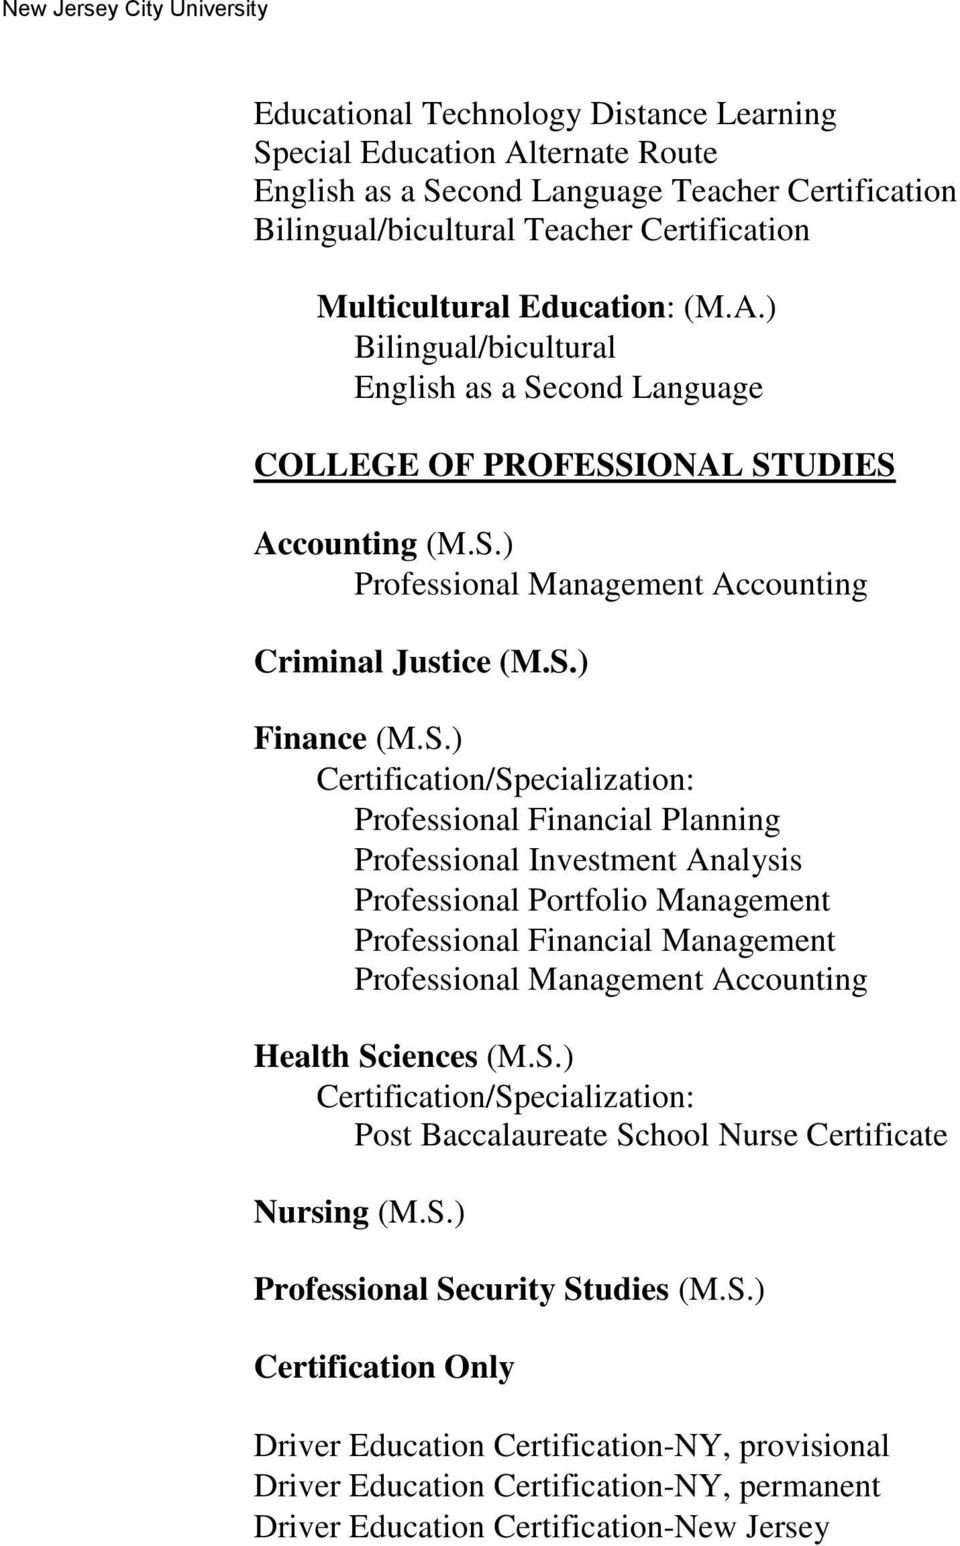 S.) Post Baccalaureate School Nurse Certificate Nursing (M.S.) Professional Security Studies (M.S.) Certification Only Driver Education Certification-NY, provisional Driver Education Certification-NY, permanent Driver Education Certification-New Jersey